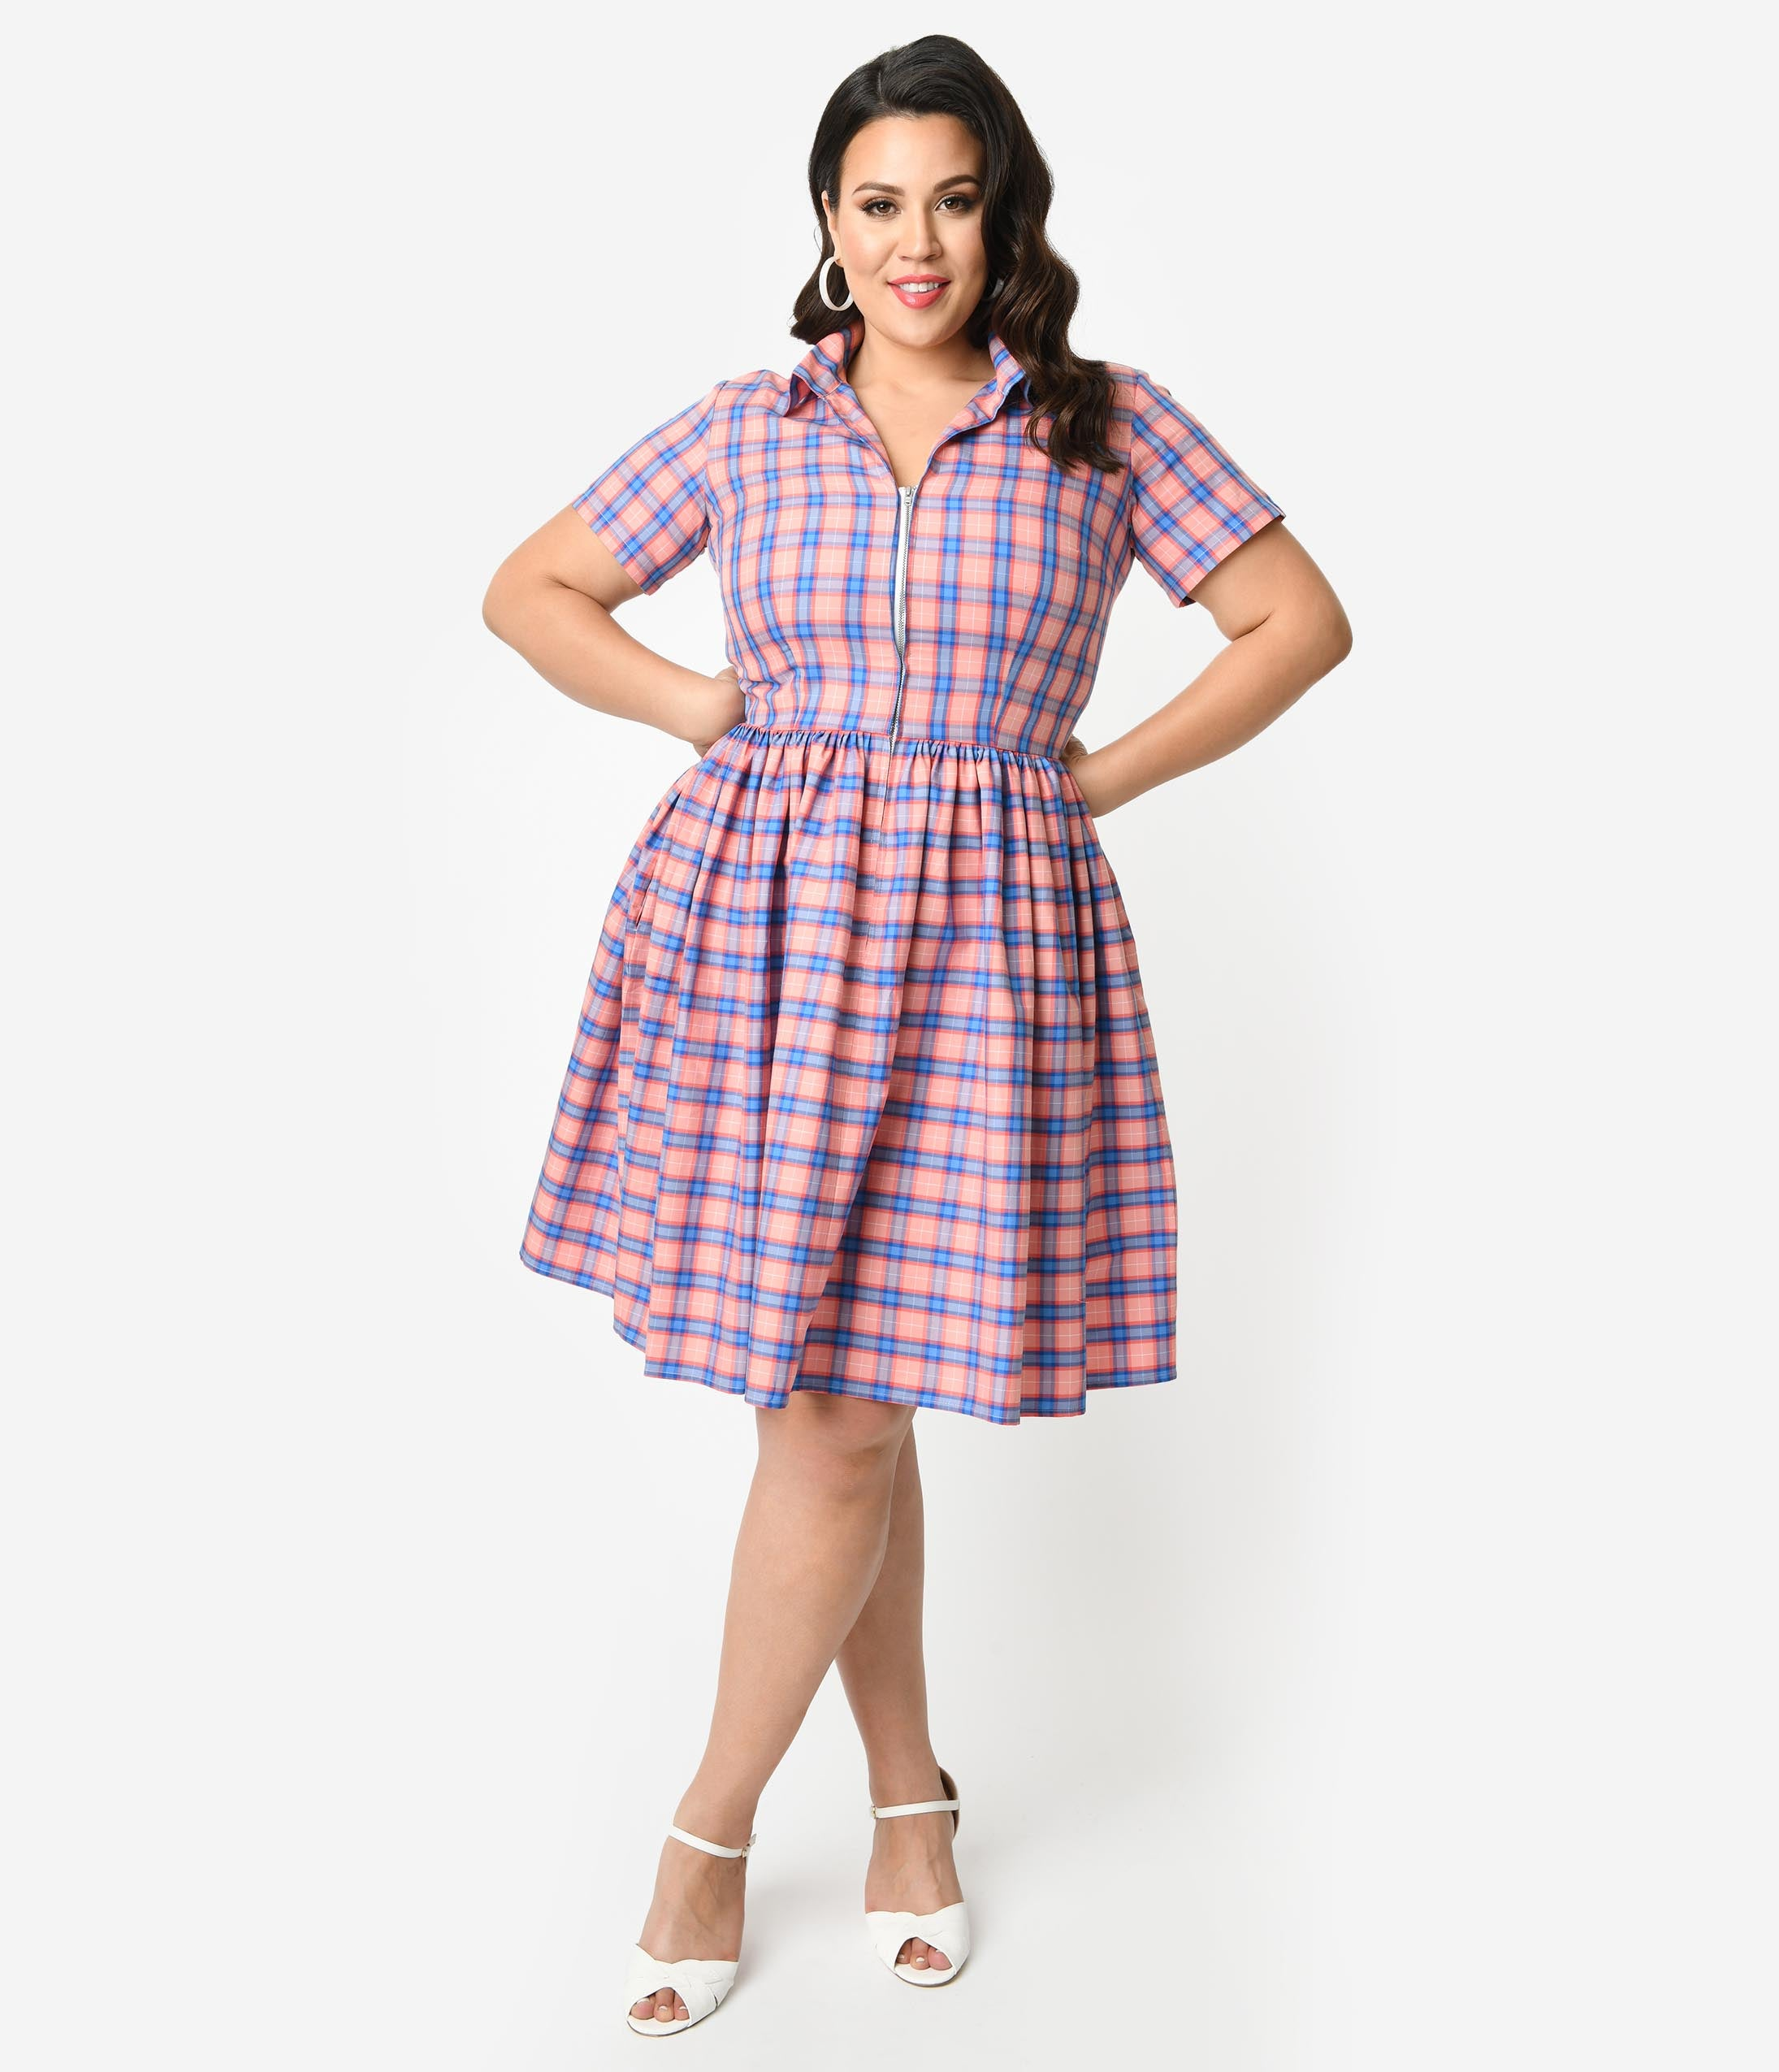 60s 70s Plus Size Dresses, Clothing, Costumes Bernie Dexter Plus Size 1950S Style Blue  Pink Plaid Cotton Short Sleeve Francis Swing Dress $128.00 AT vintagedancer.com